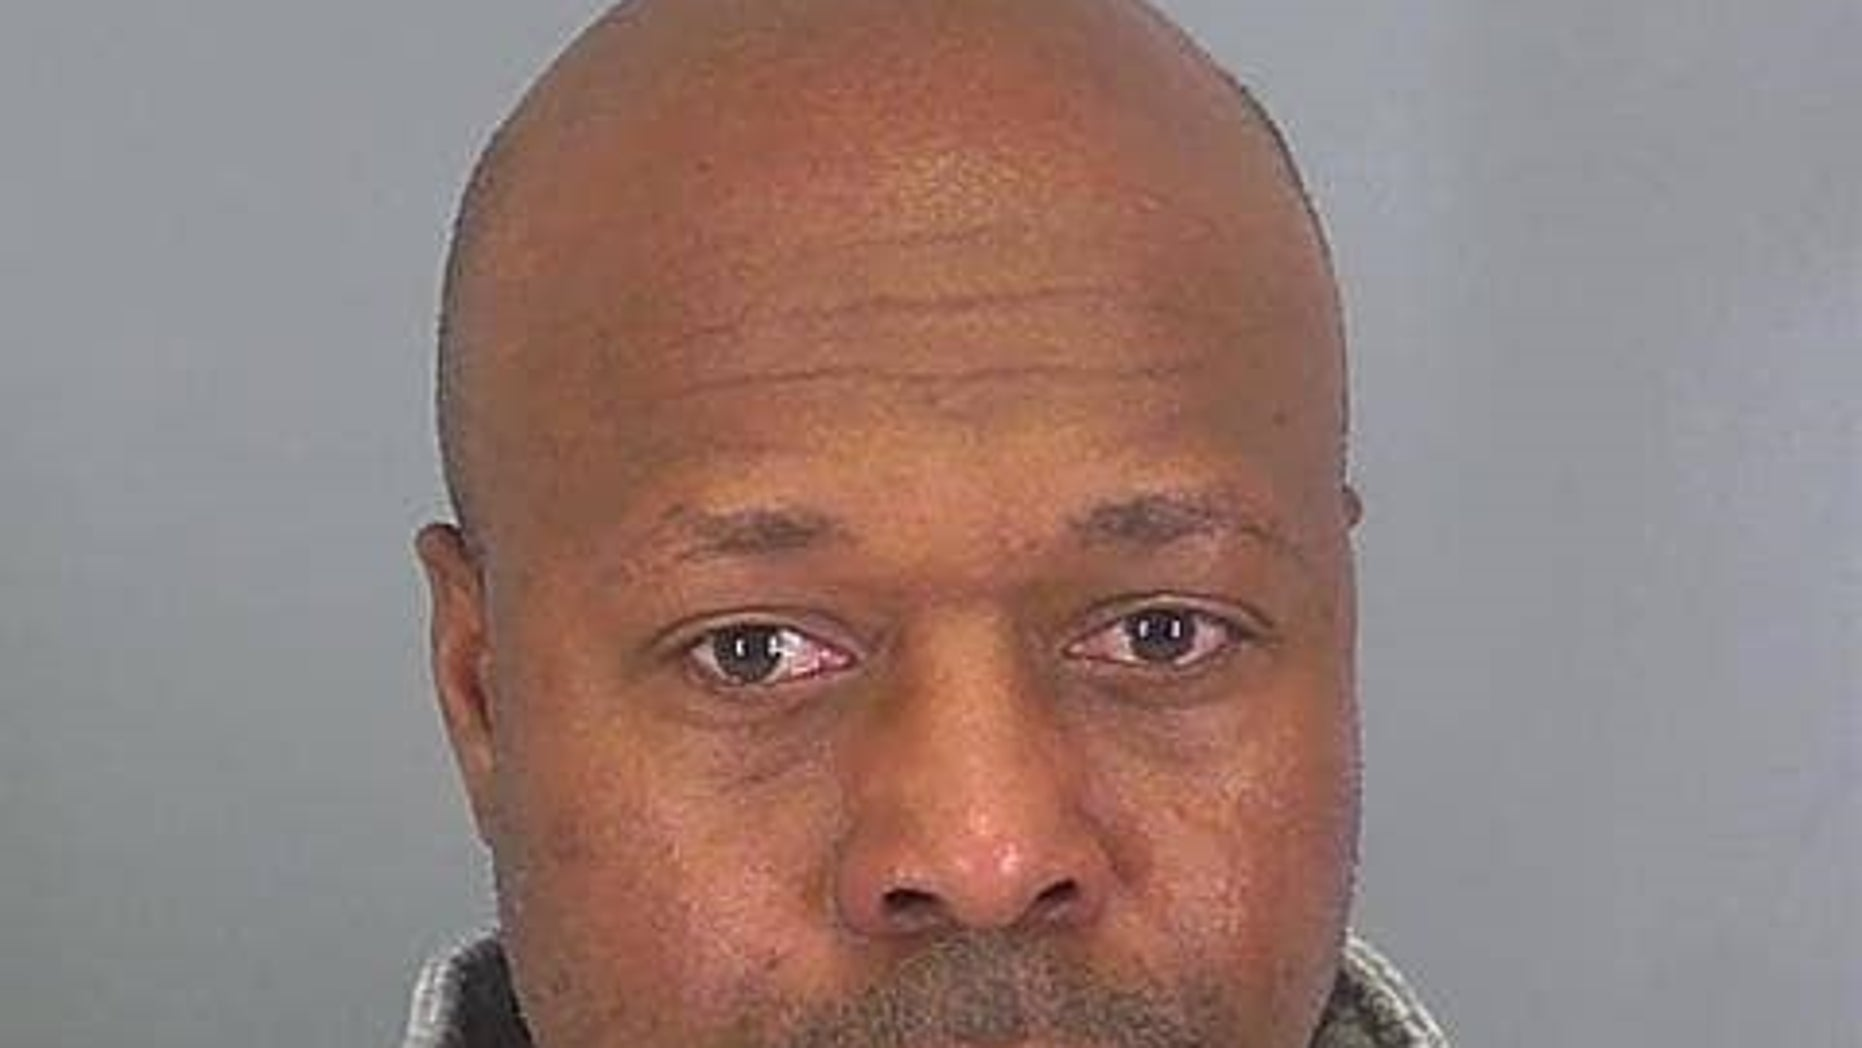 The Spartanburg Police Department said they arrested Gregory Frye, 52, a man accused of raping 12 women between the years 1995 and 2003.